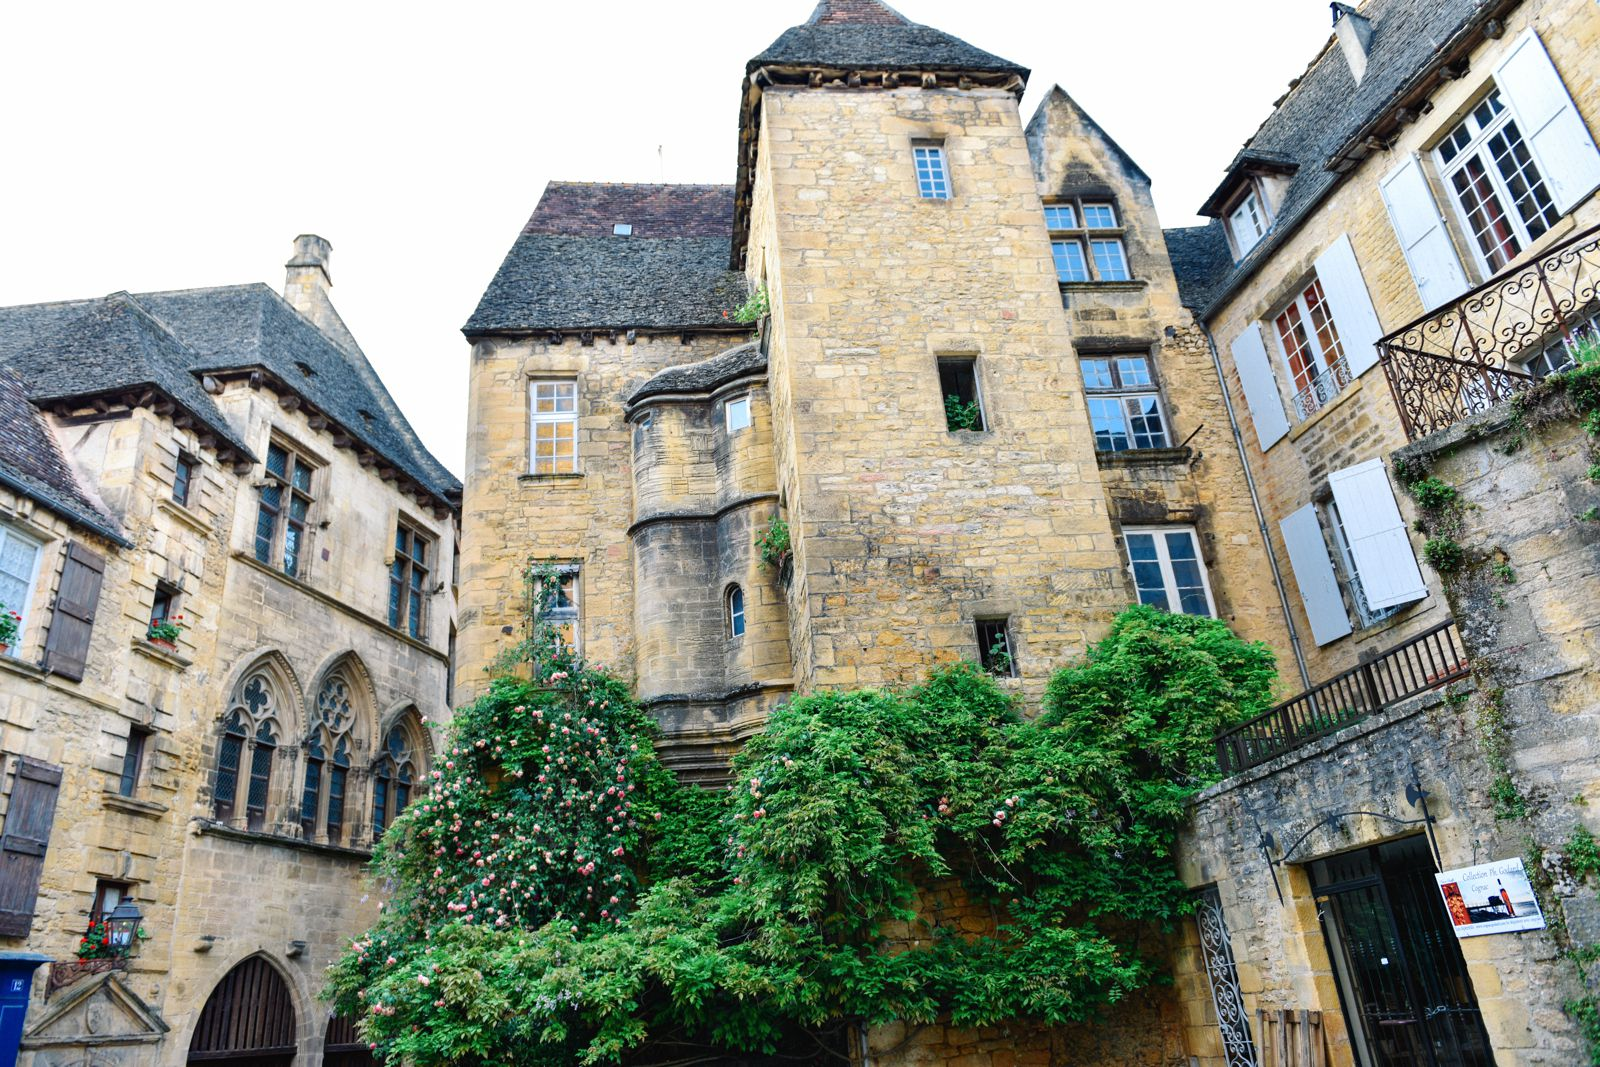 The Old Historic French Town Of Sarlat (24)